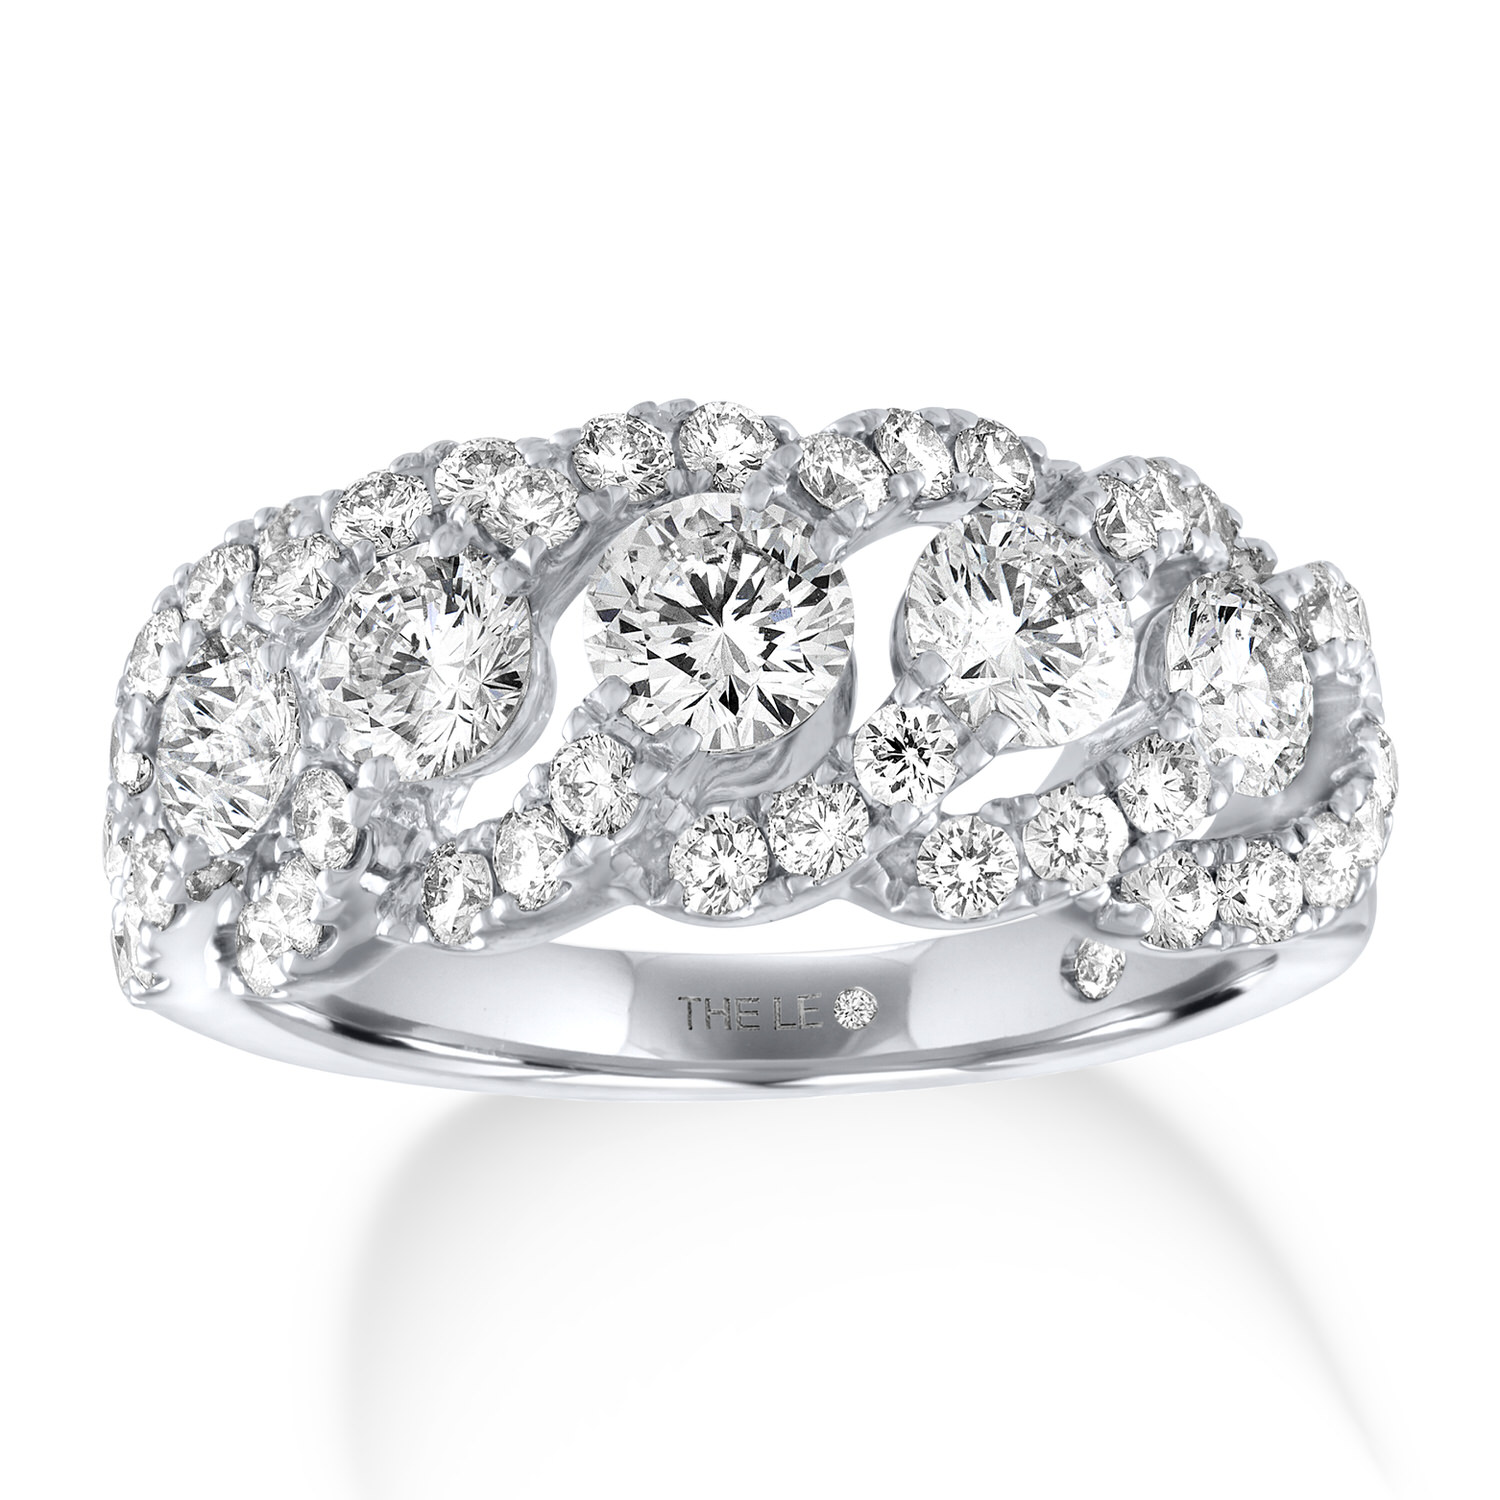 Leo Diamond Anniversary Band 2 ct tw Round-cut 14K White Gold